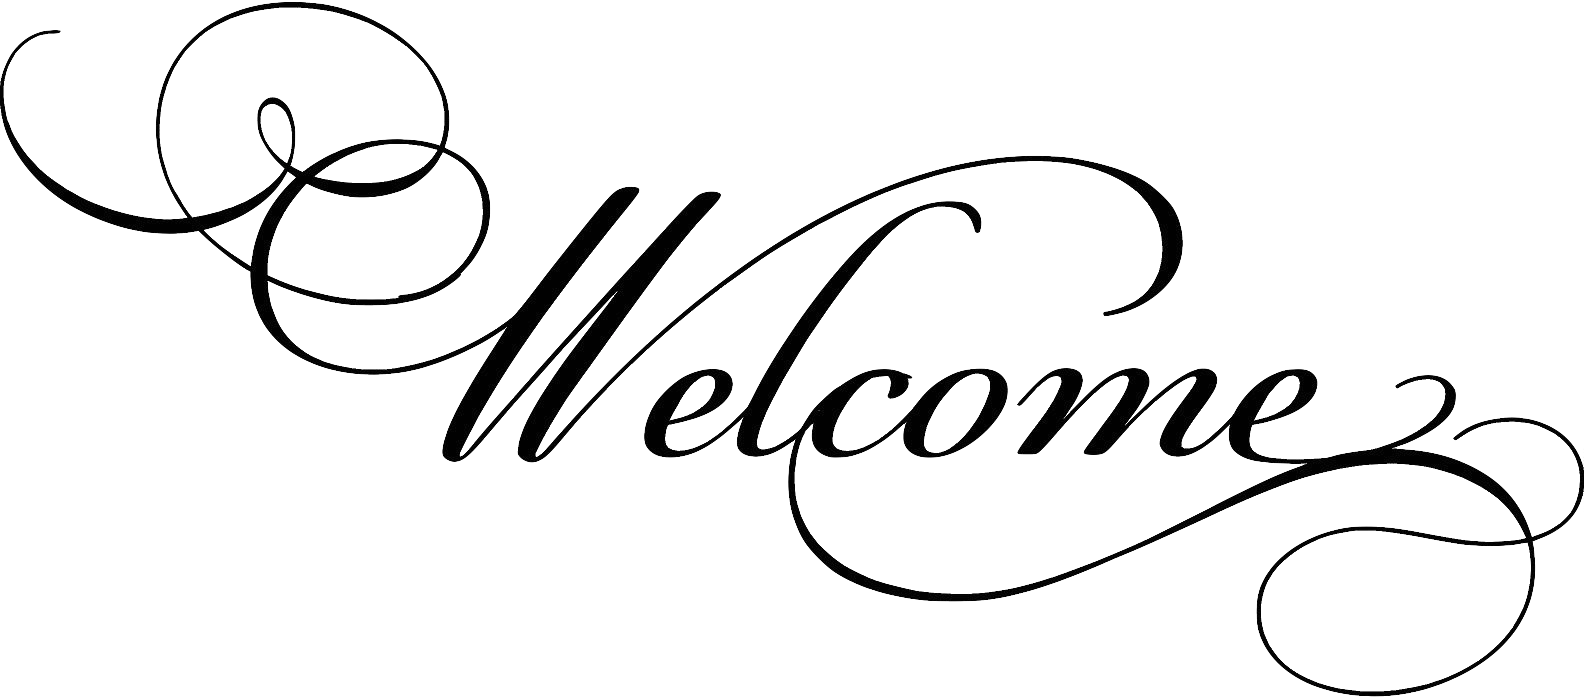 Welcome PNG images free download.